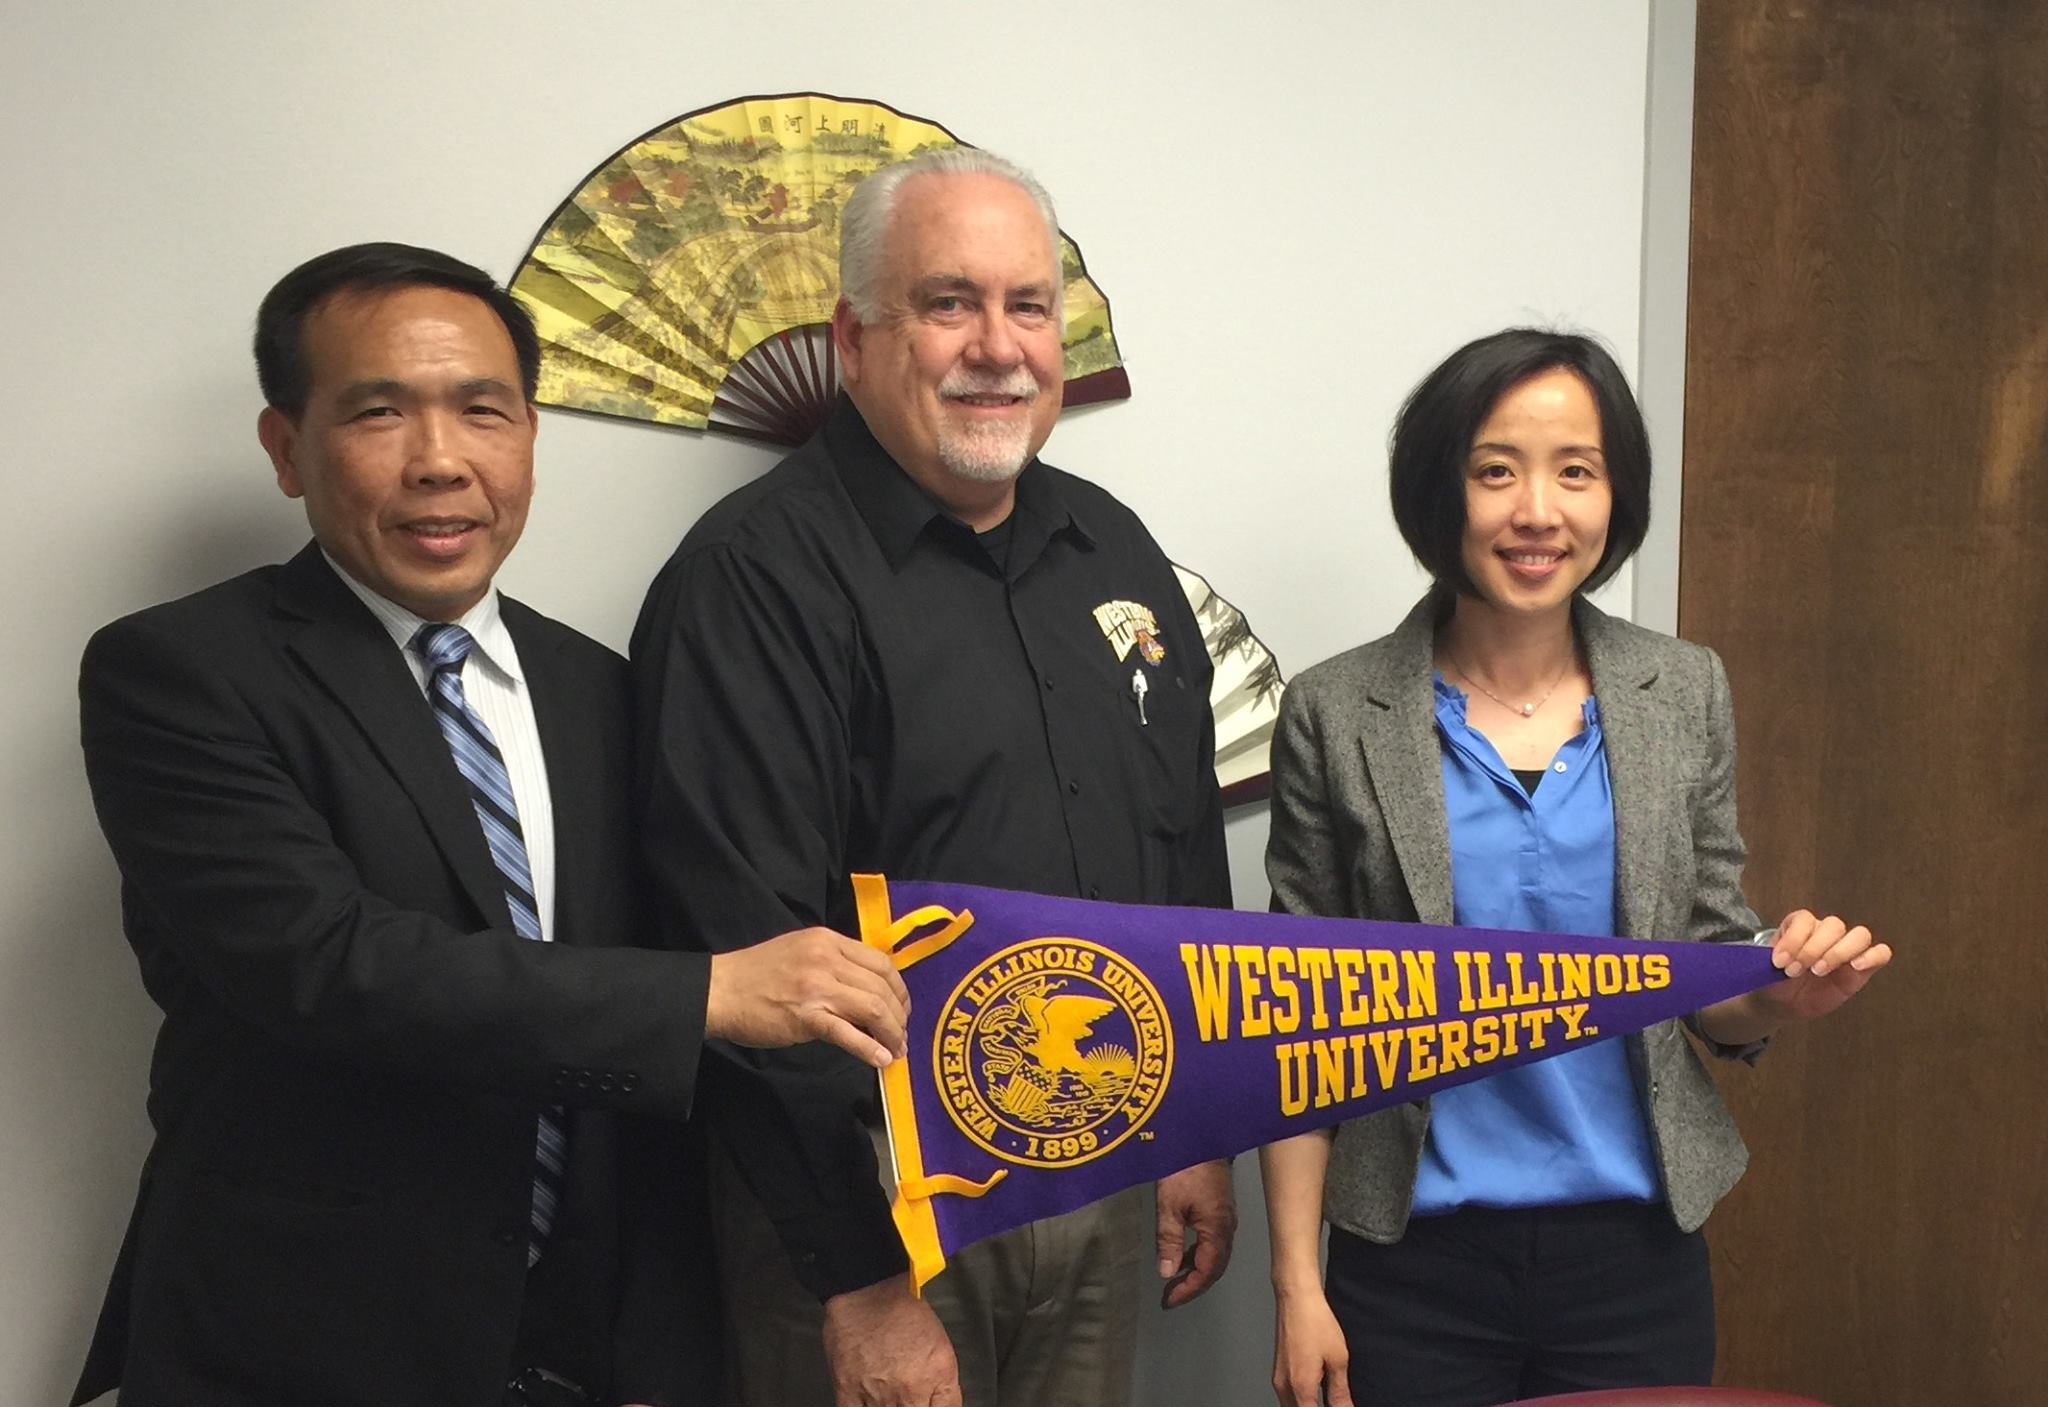 Visit Director Richard Carter of WIU international studies (middle) with Deputy Director Erica Lee